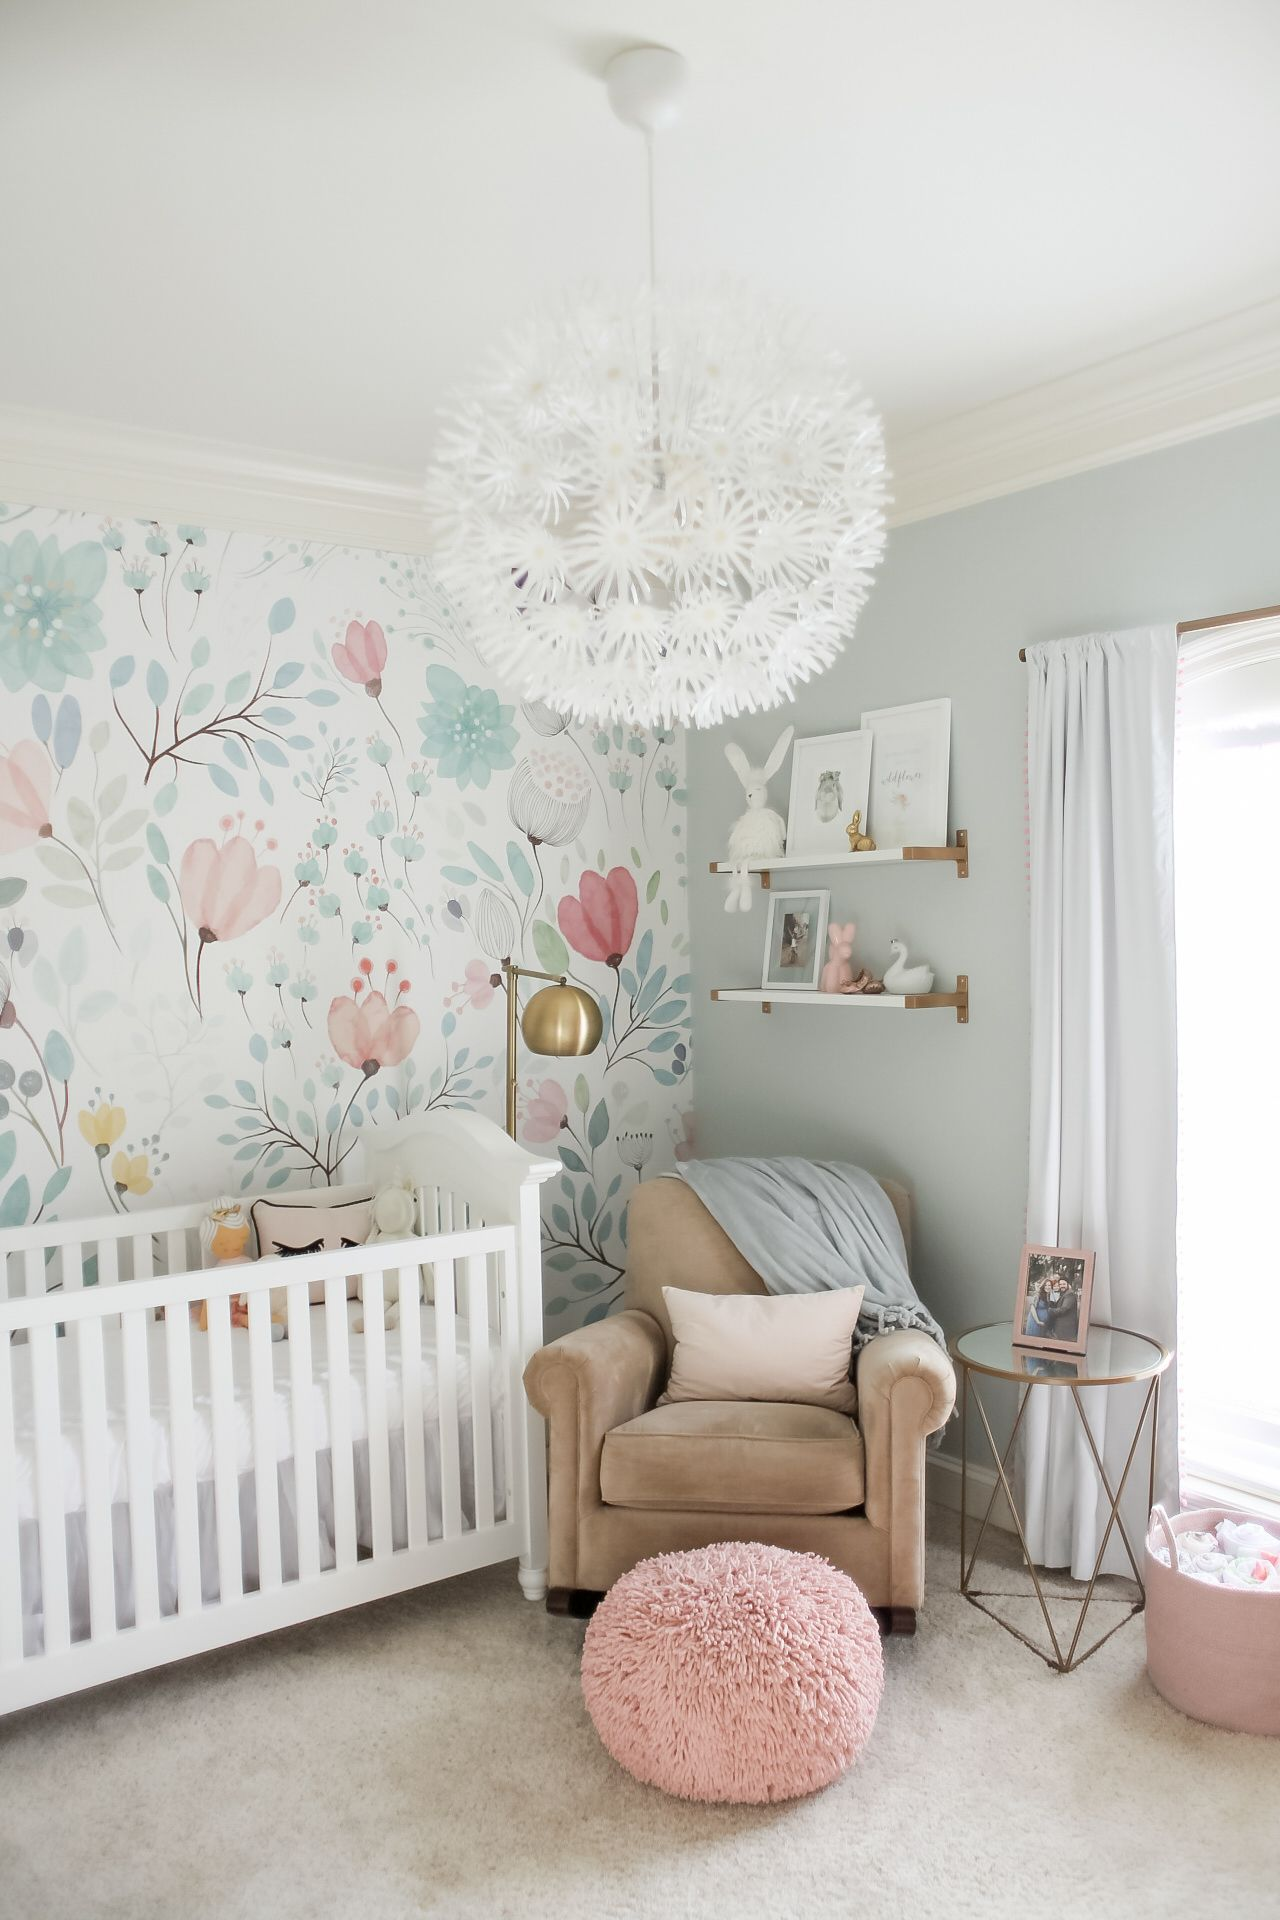 Individuals searched for baby girl room thousands of hand crafted vintage and one of a kind products and their personal gifts related baby room ideas